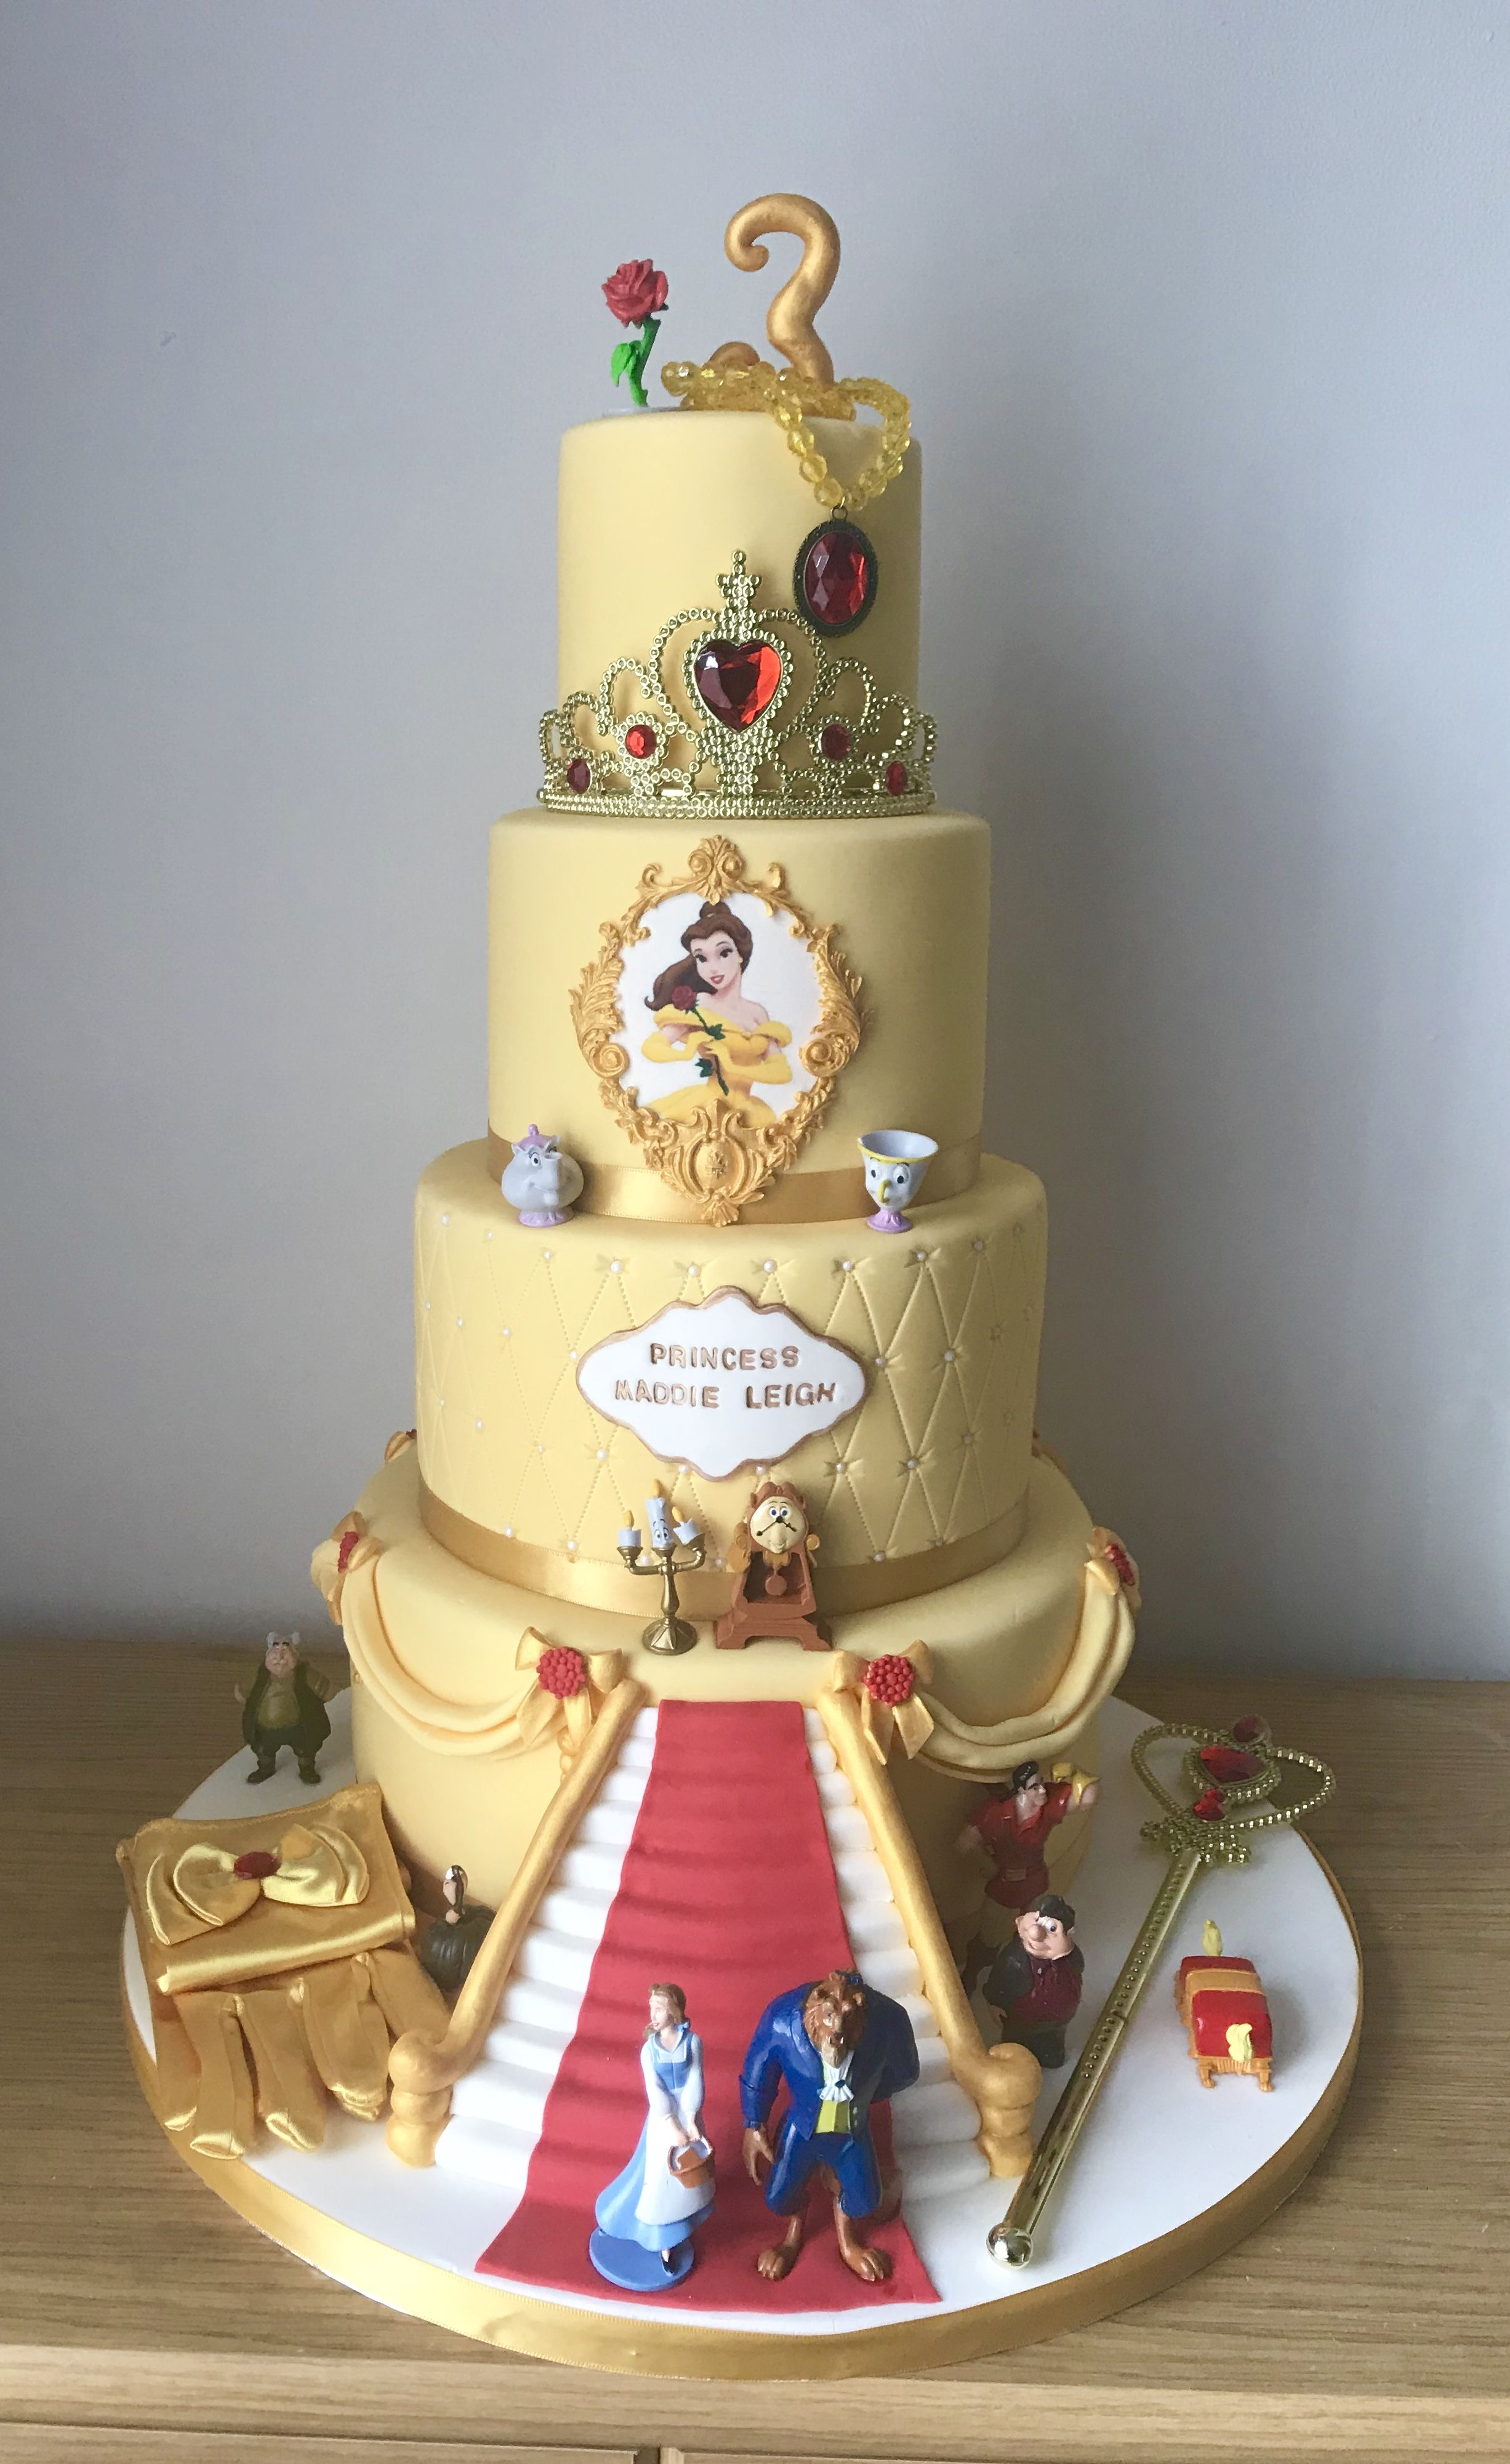 Beauty And The Beast Cake Disney Wedding Cake Beauty And The Beast Wedding Cake Beauty And Beast Cake